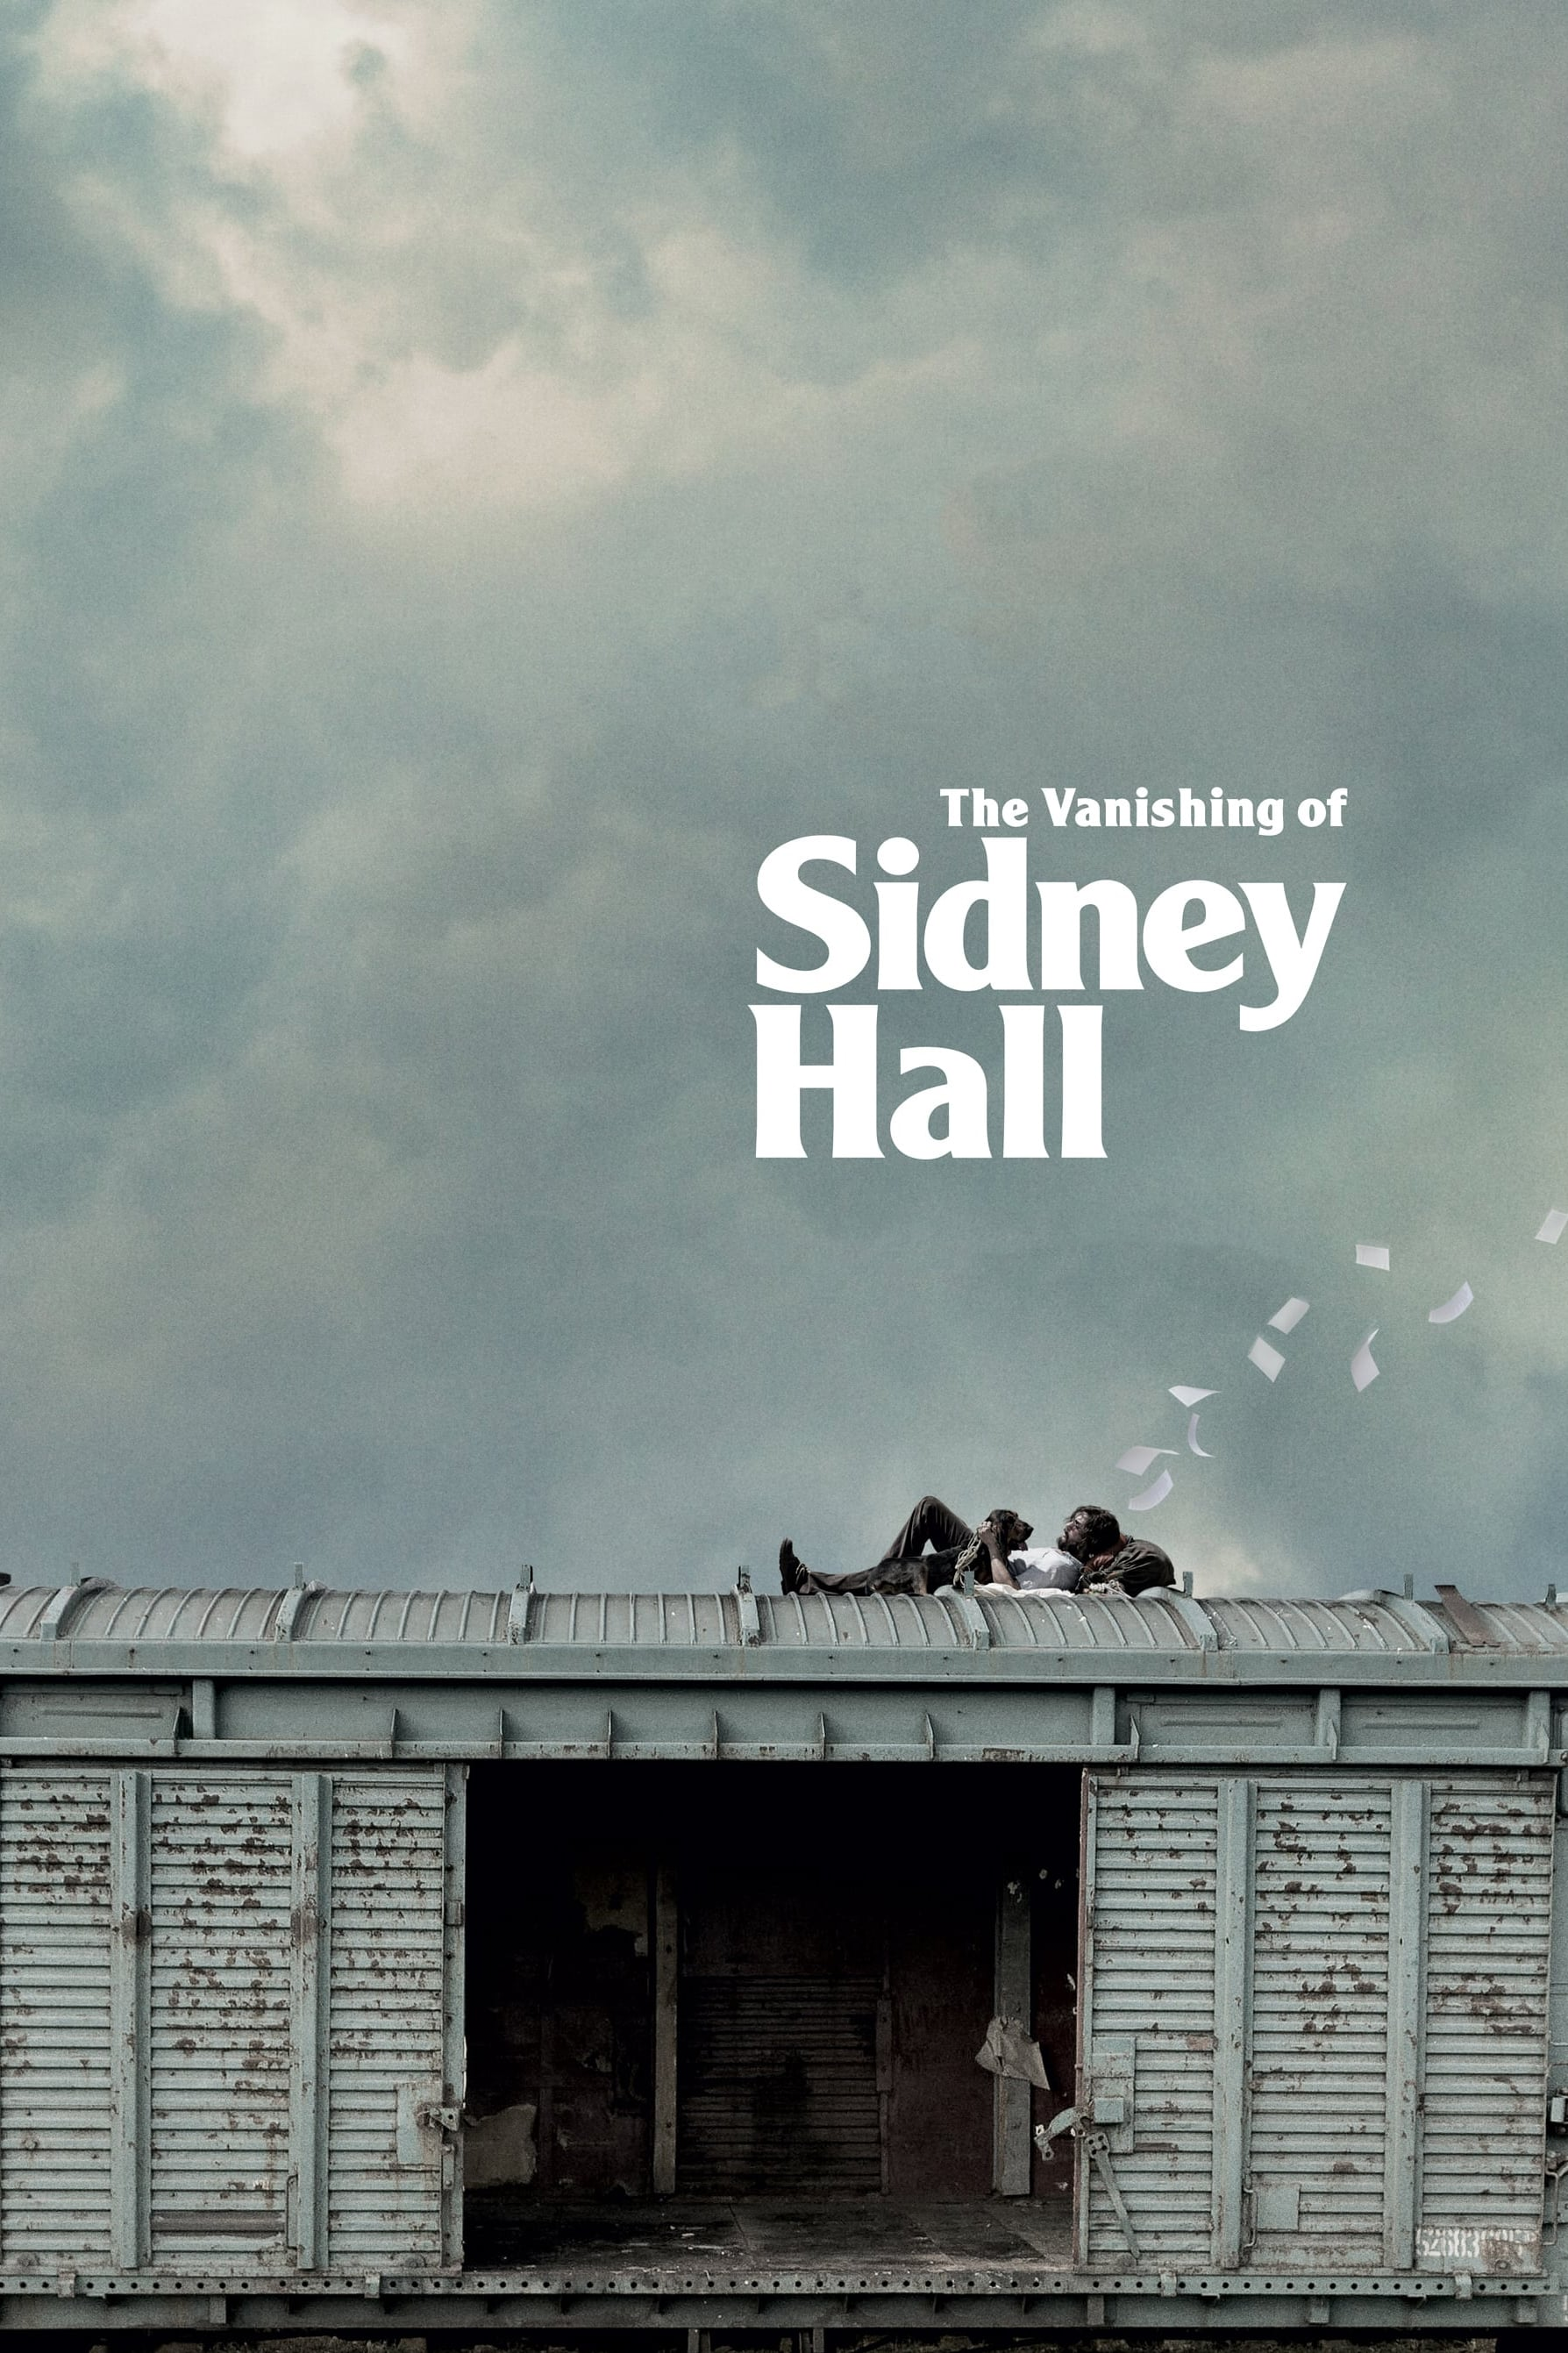 The Vanishing of Sidney Hall